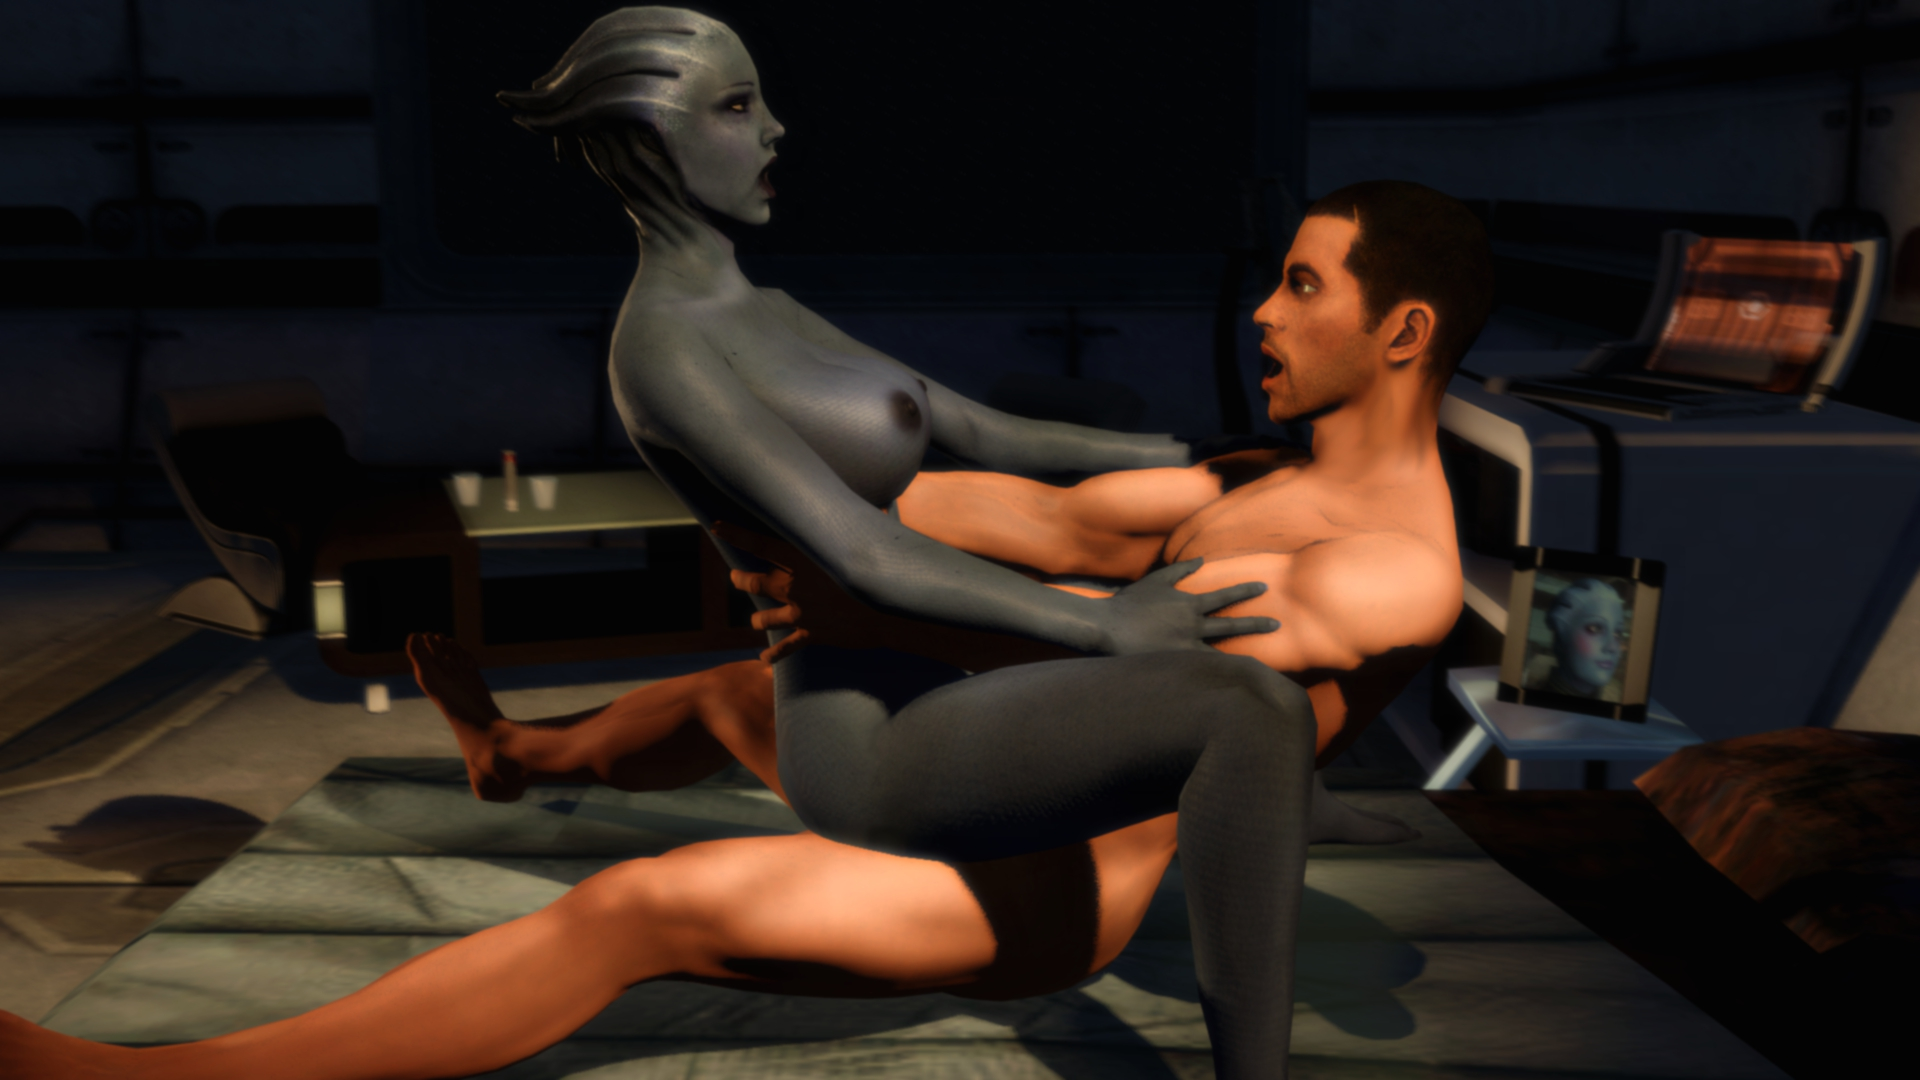 Mass effect liara xxx woman on woman porno images